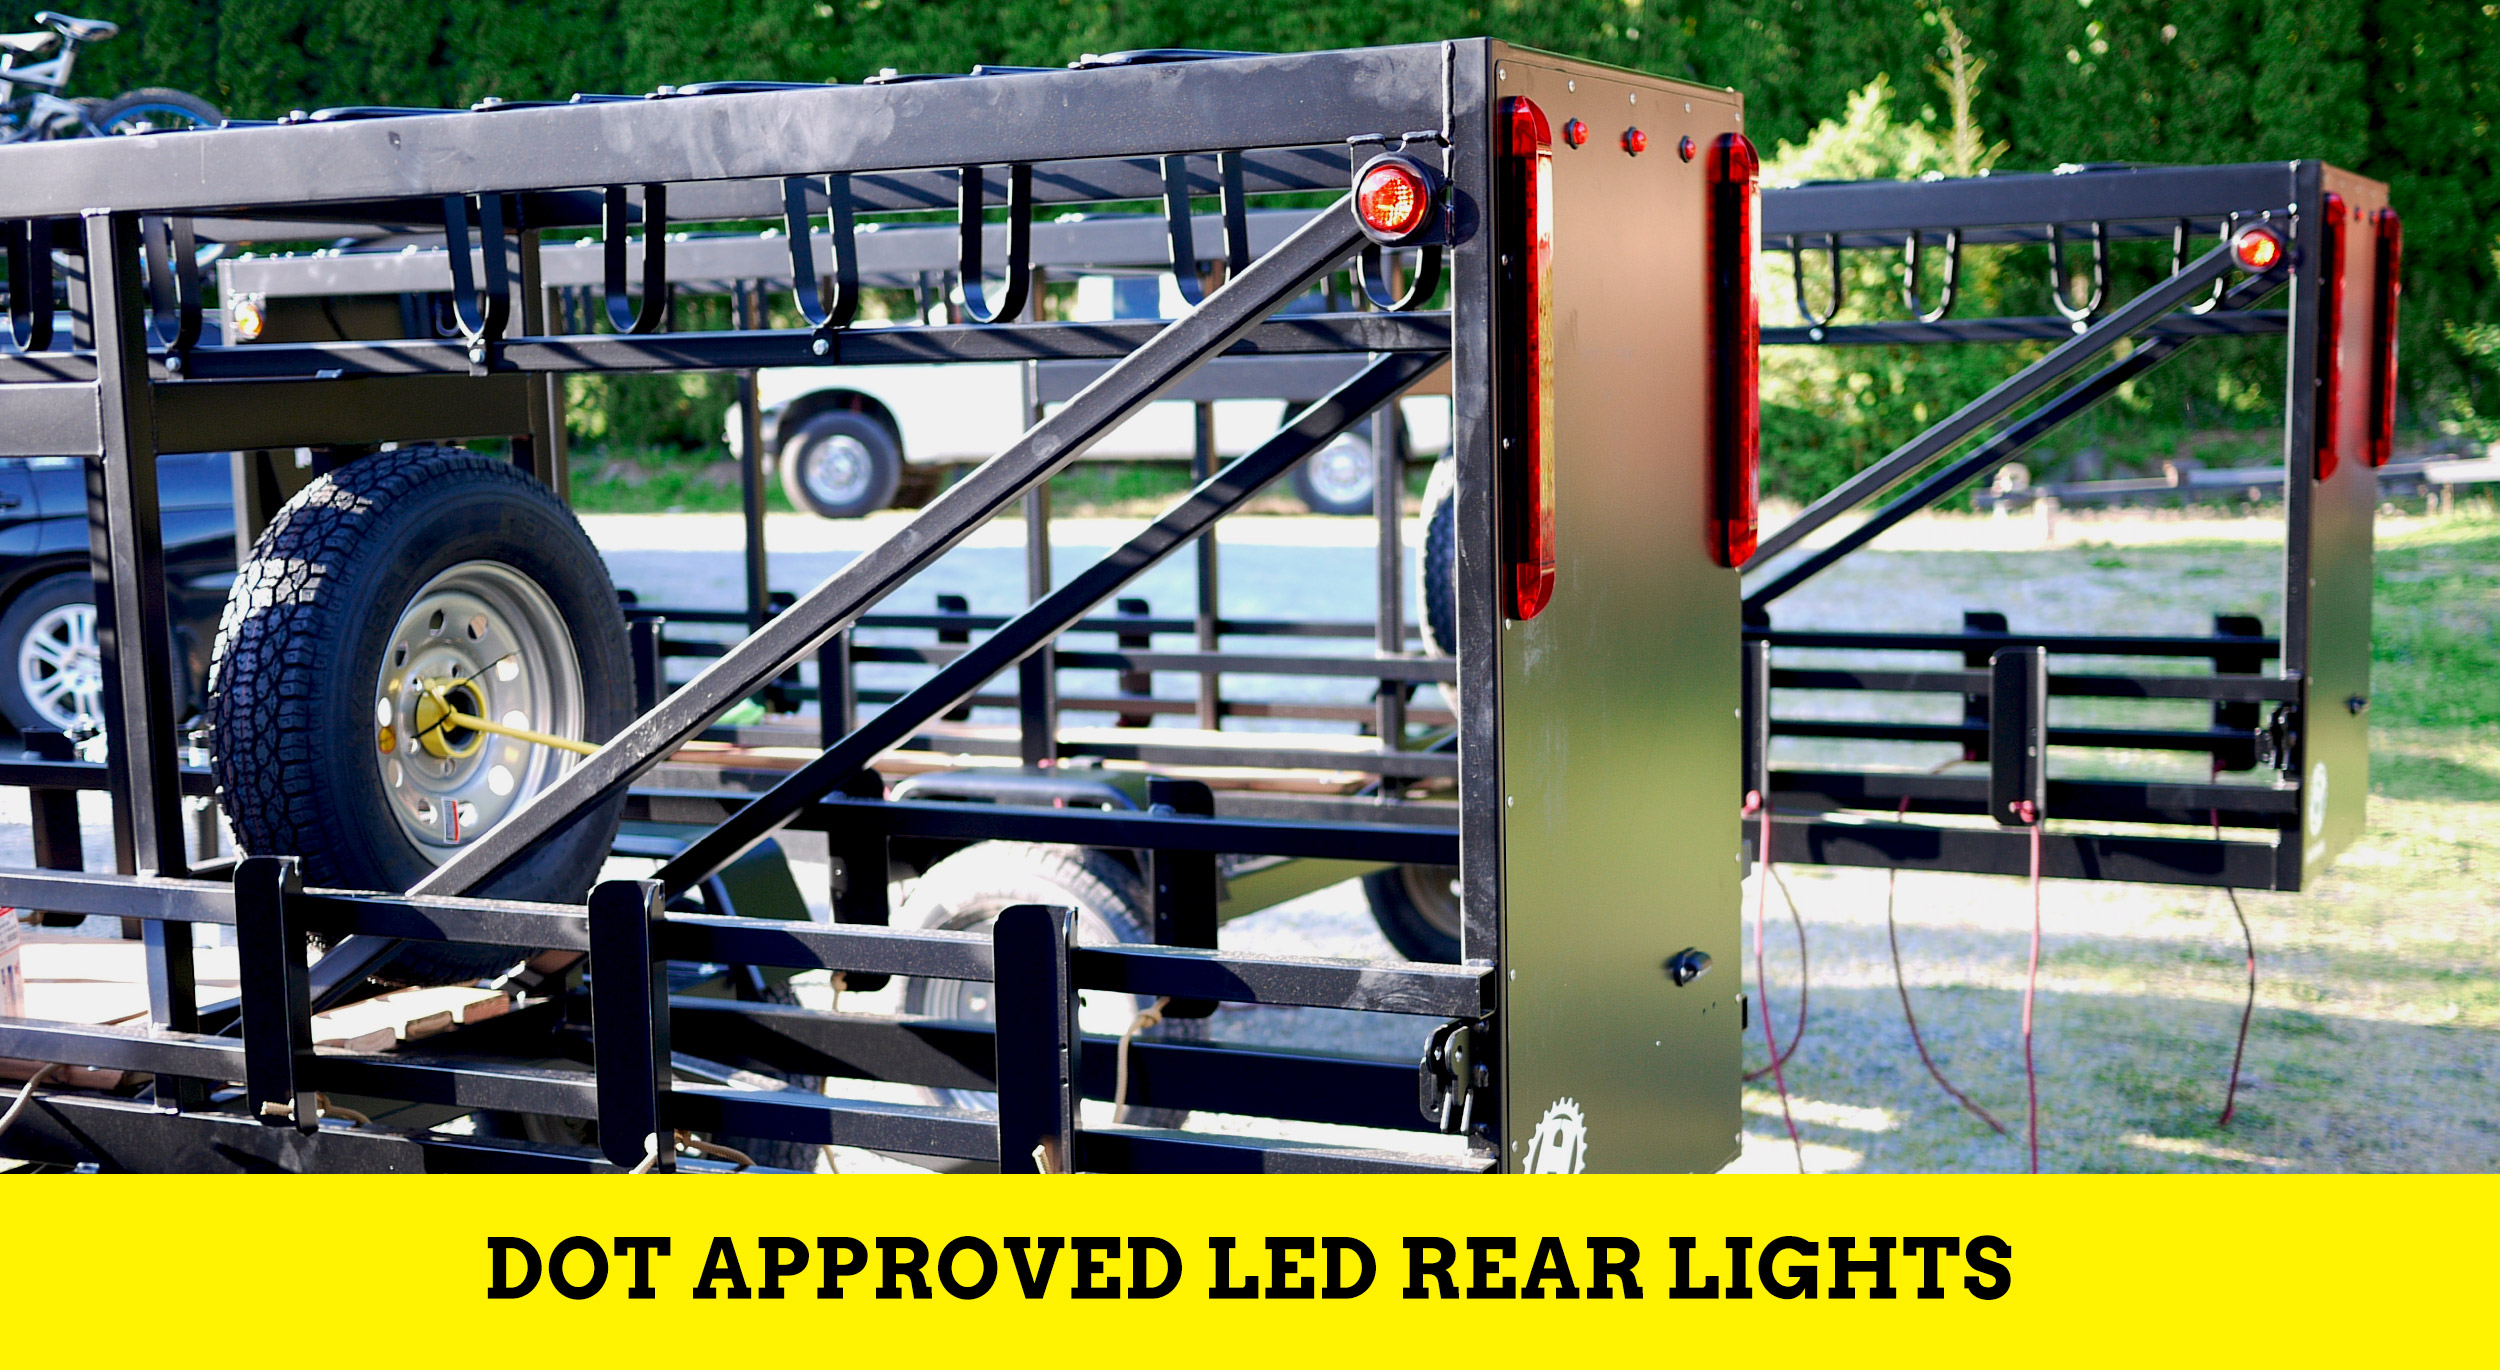 Huckwagons Mountain Bike Shuttle Trailer DOT approved LED Rear lights